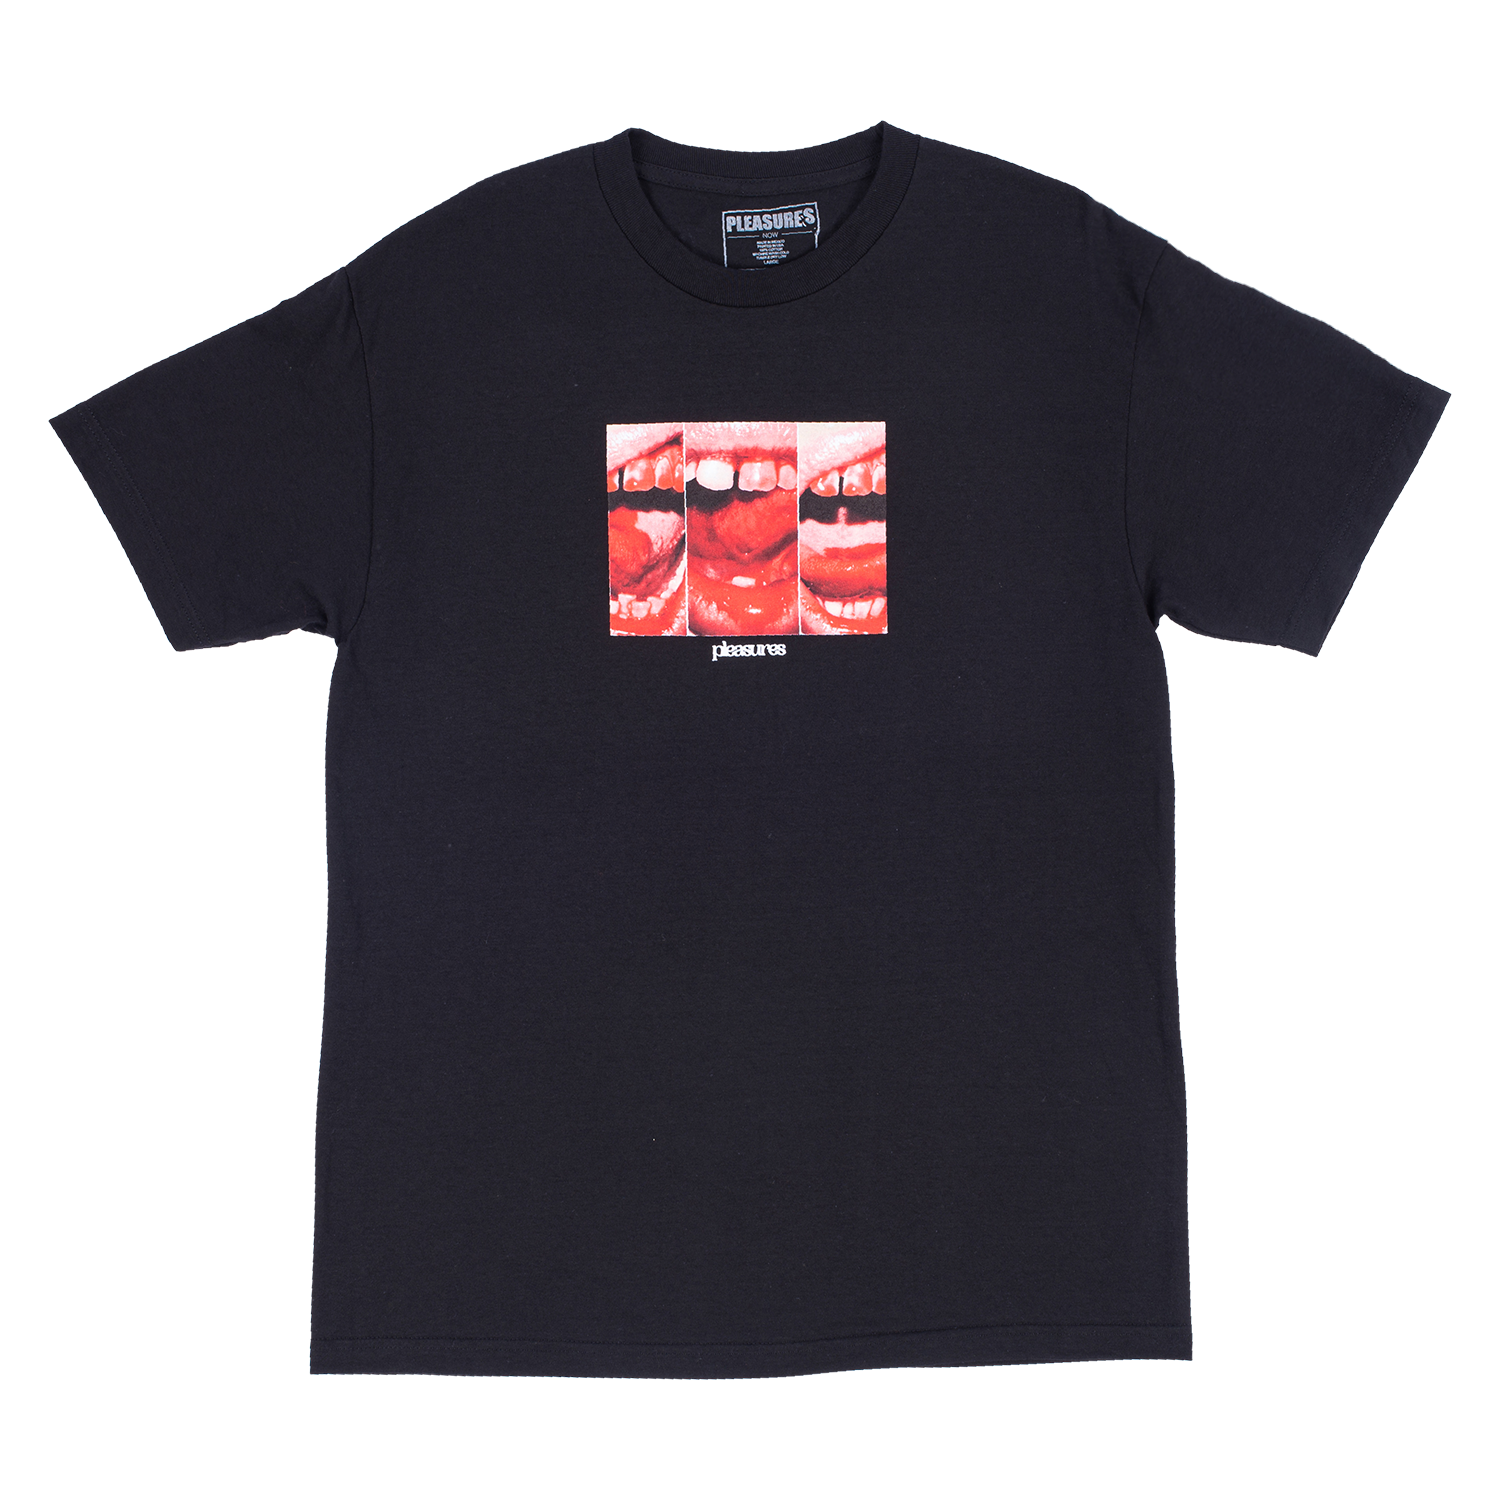 Mouth Off Short Sleeve Shirt (Black)